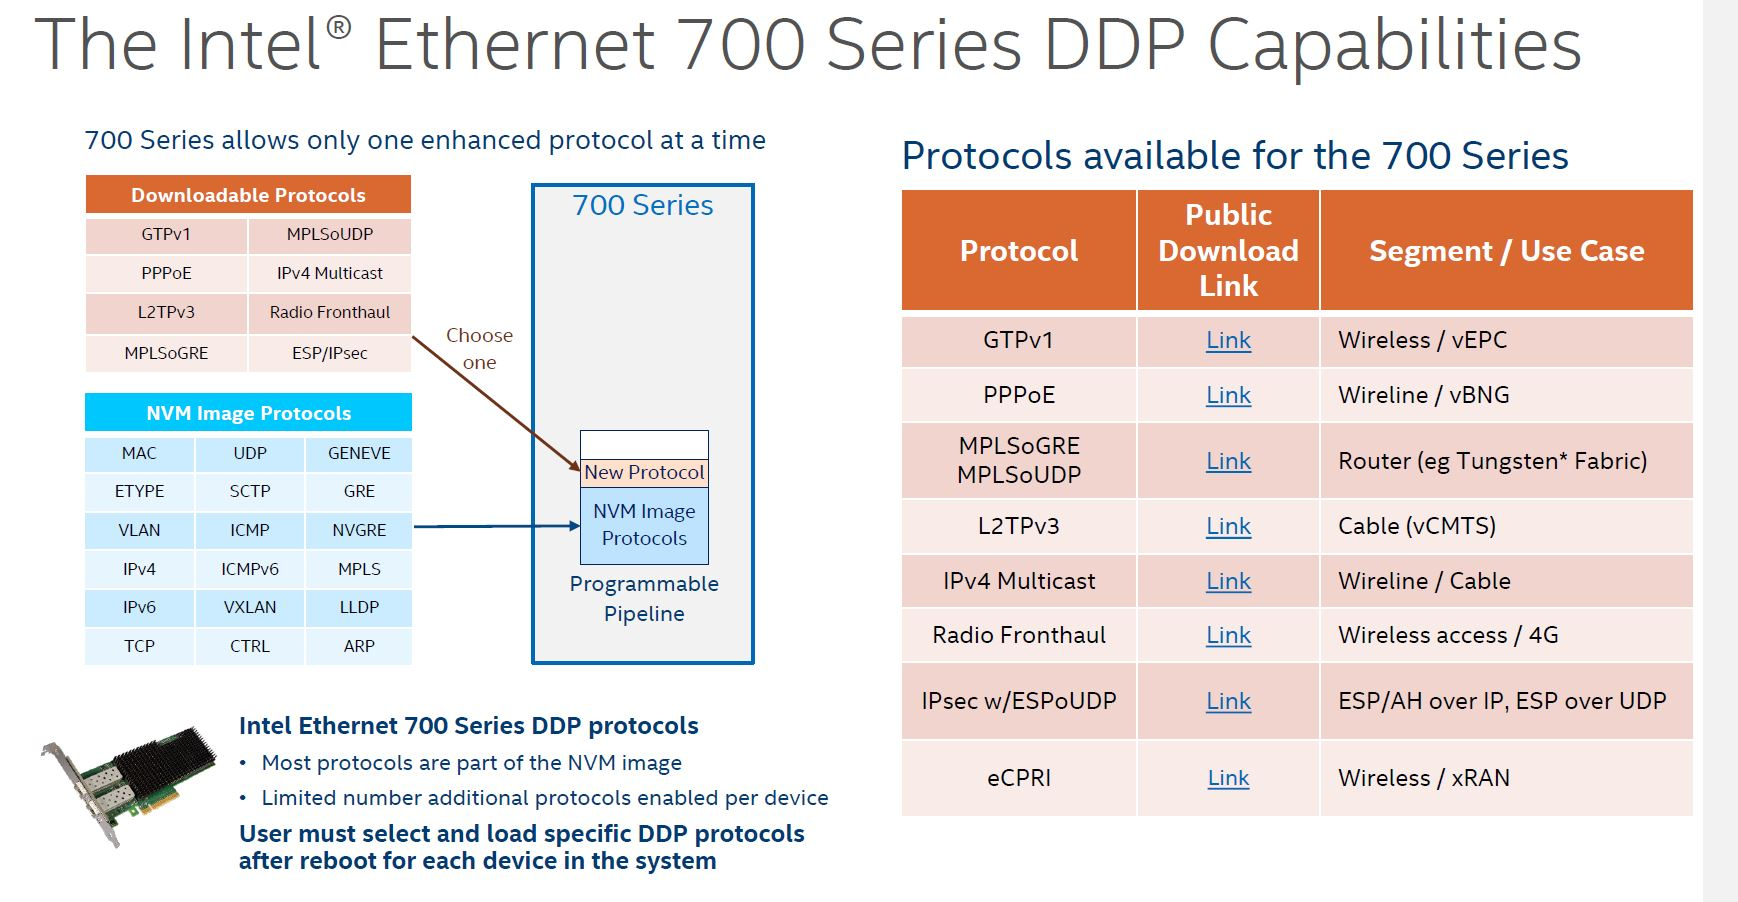 Intel 700 Series DDP